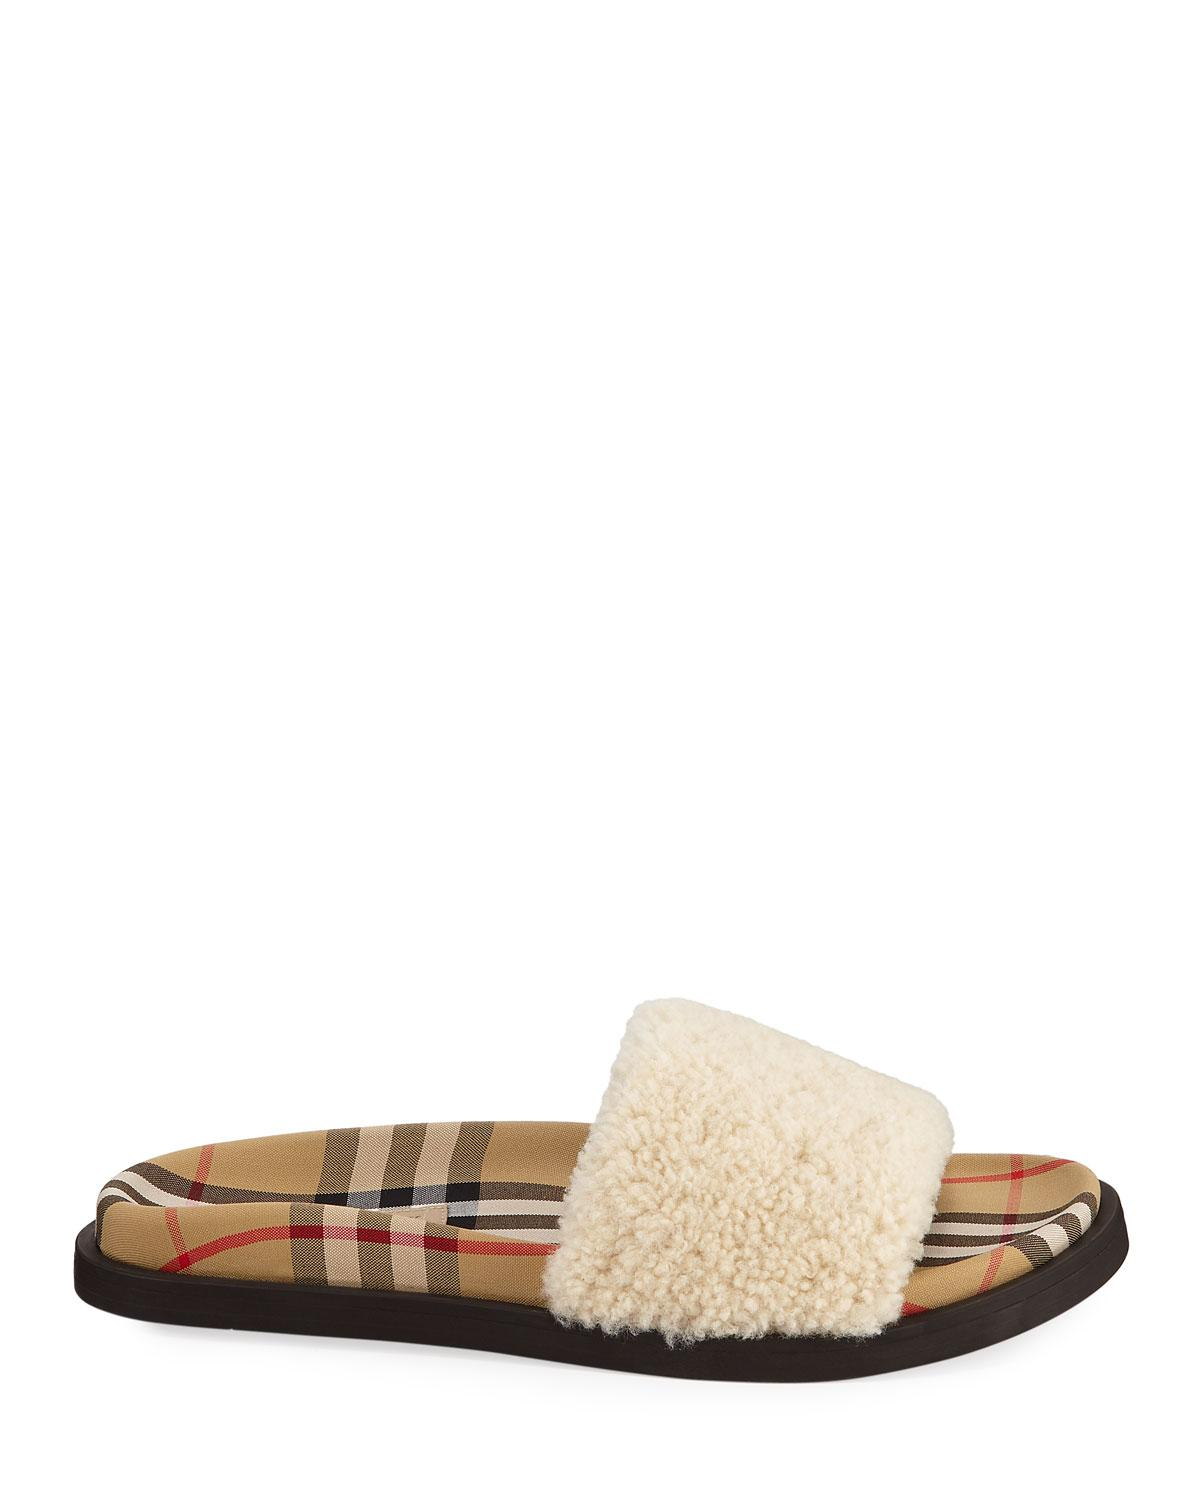 a9e9b985f0d Lyst - Burberry Kencot Slides In Beige Shearling in Natural - Save 18%